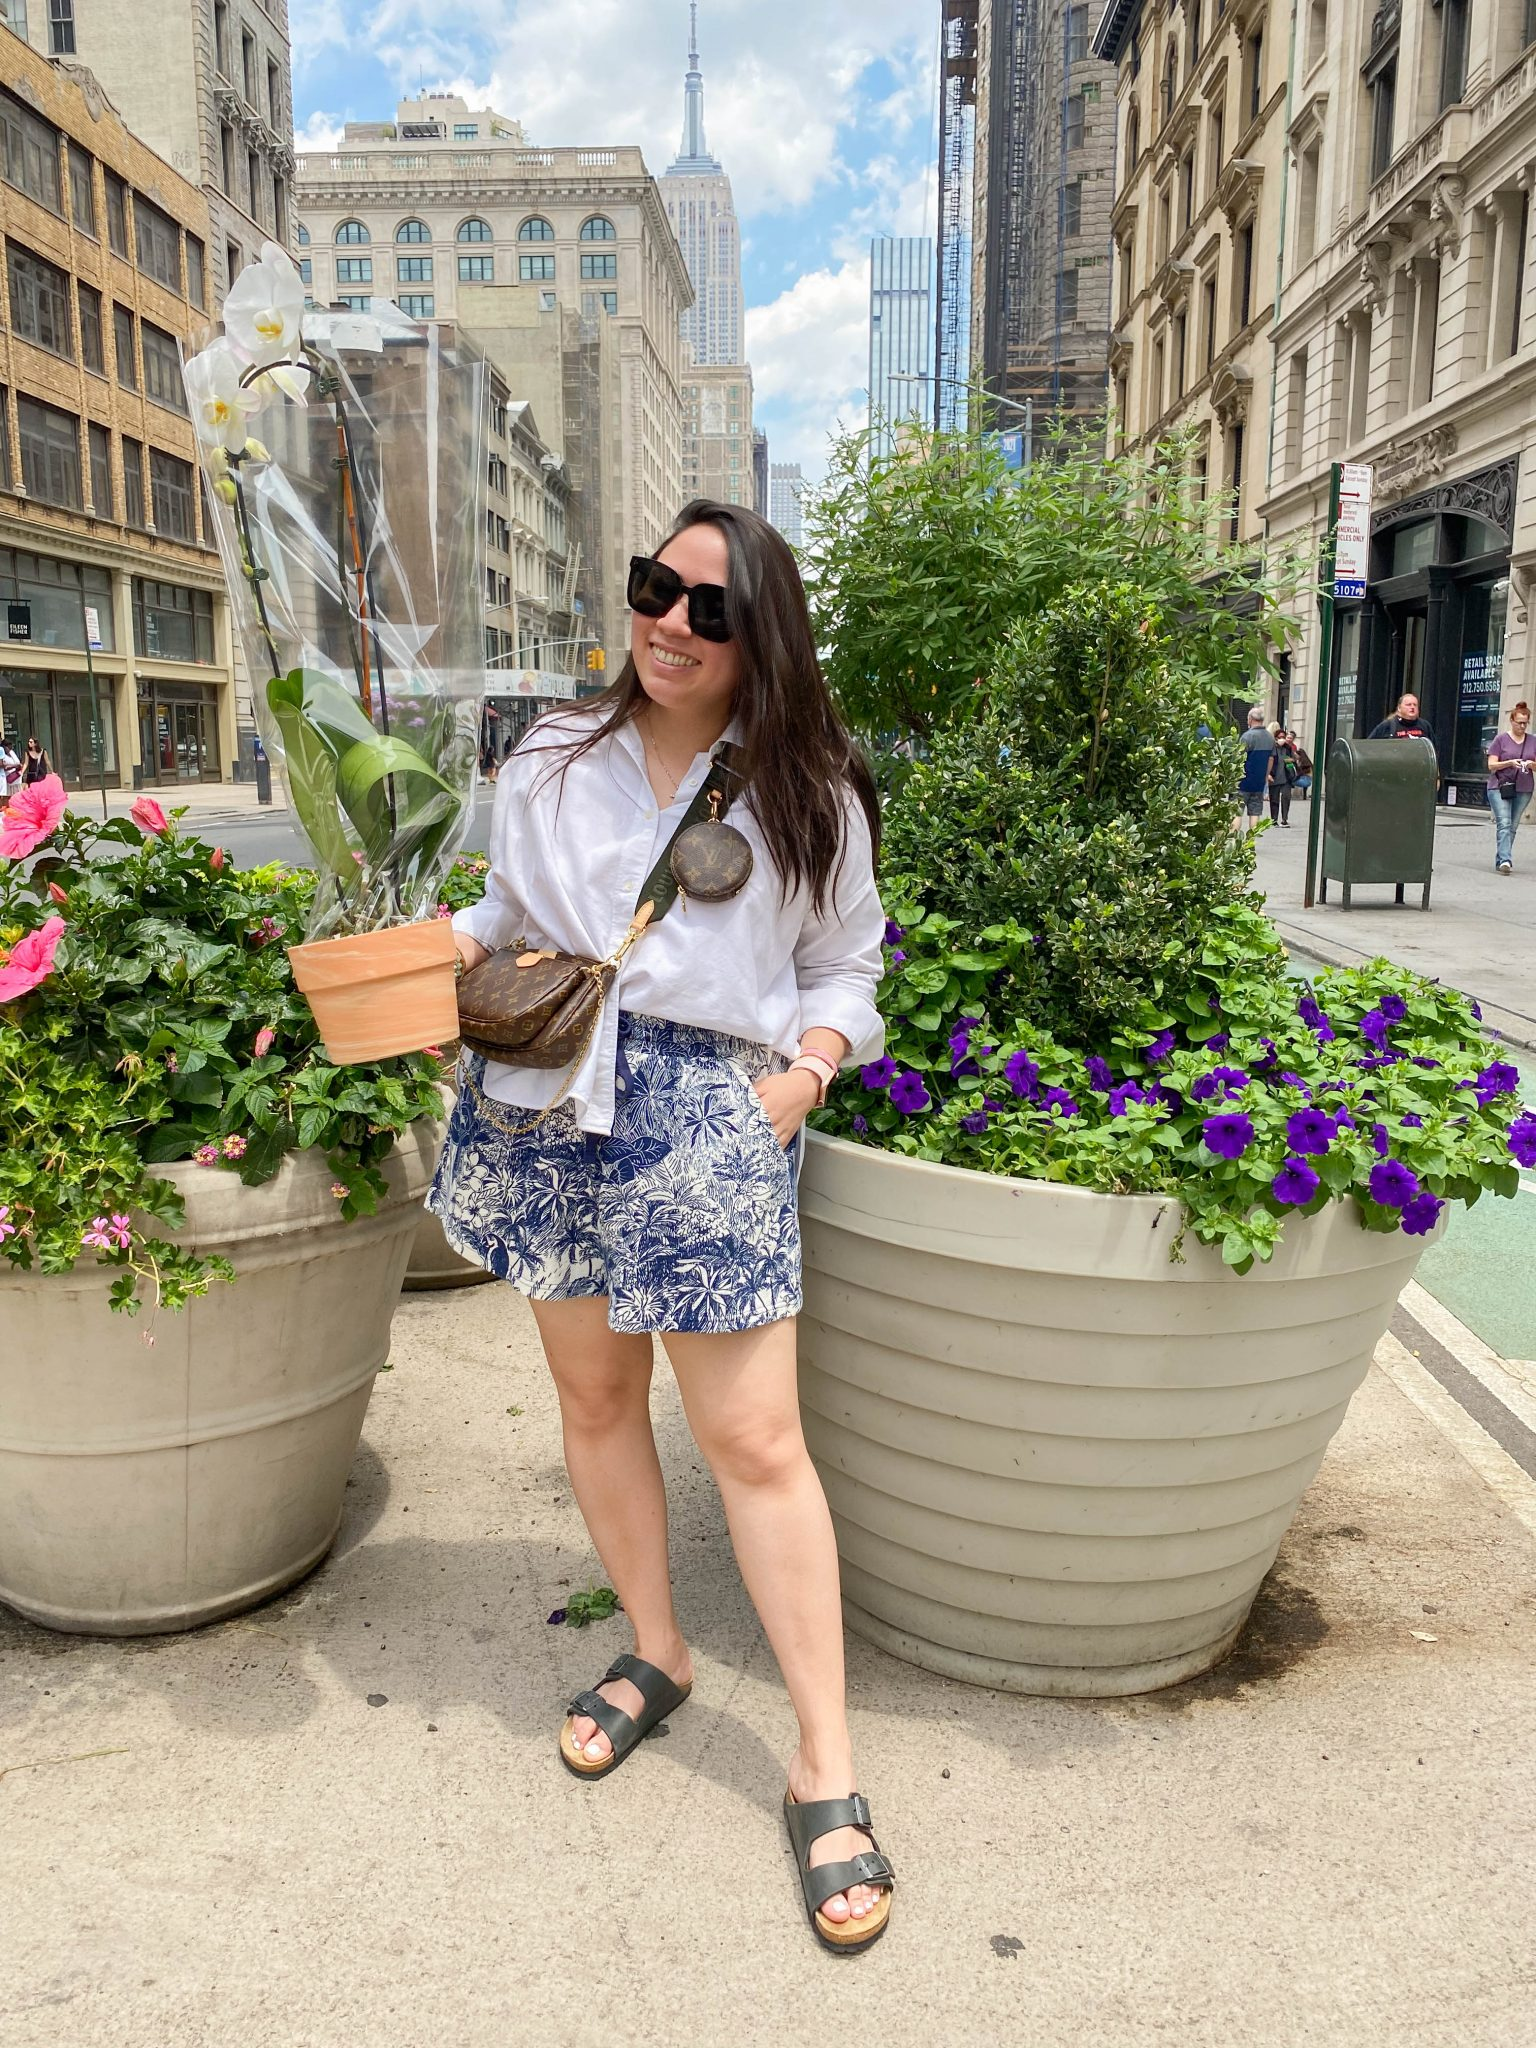 Louis Vuitton Multi Pochette Accessoires Review | Does It Live Up To The Hype by Basically A Mess (how to style the Louis Vuitton Multi Pochette Accessoires)